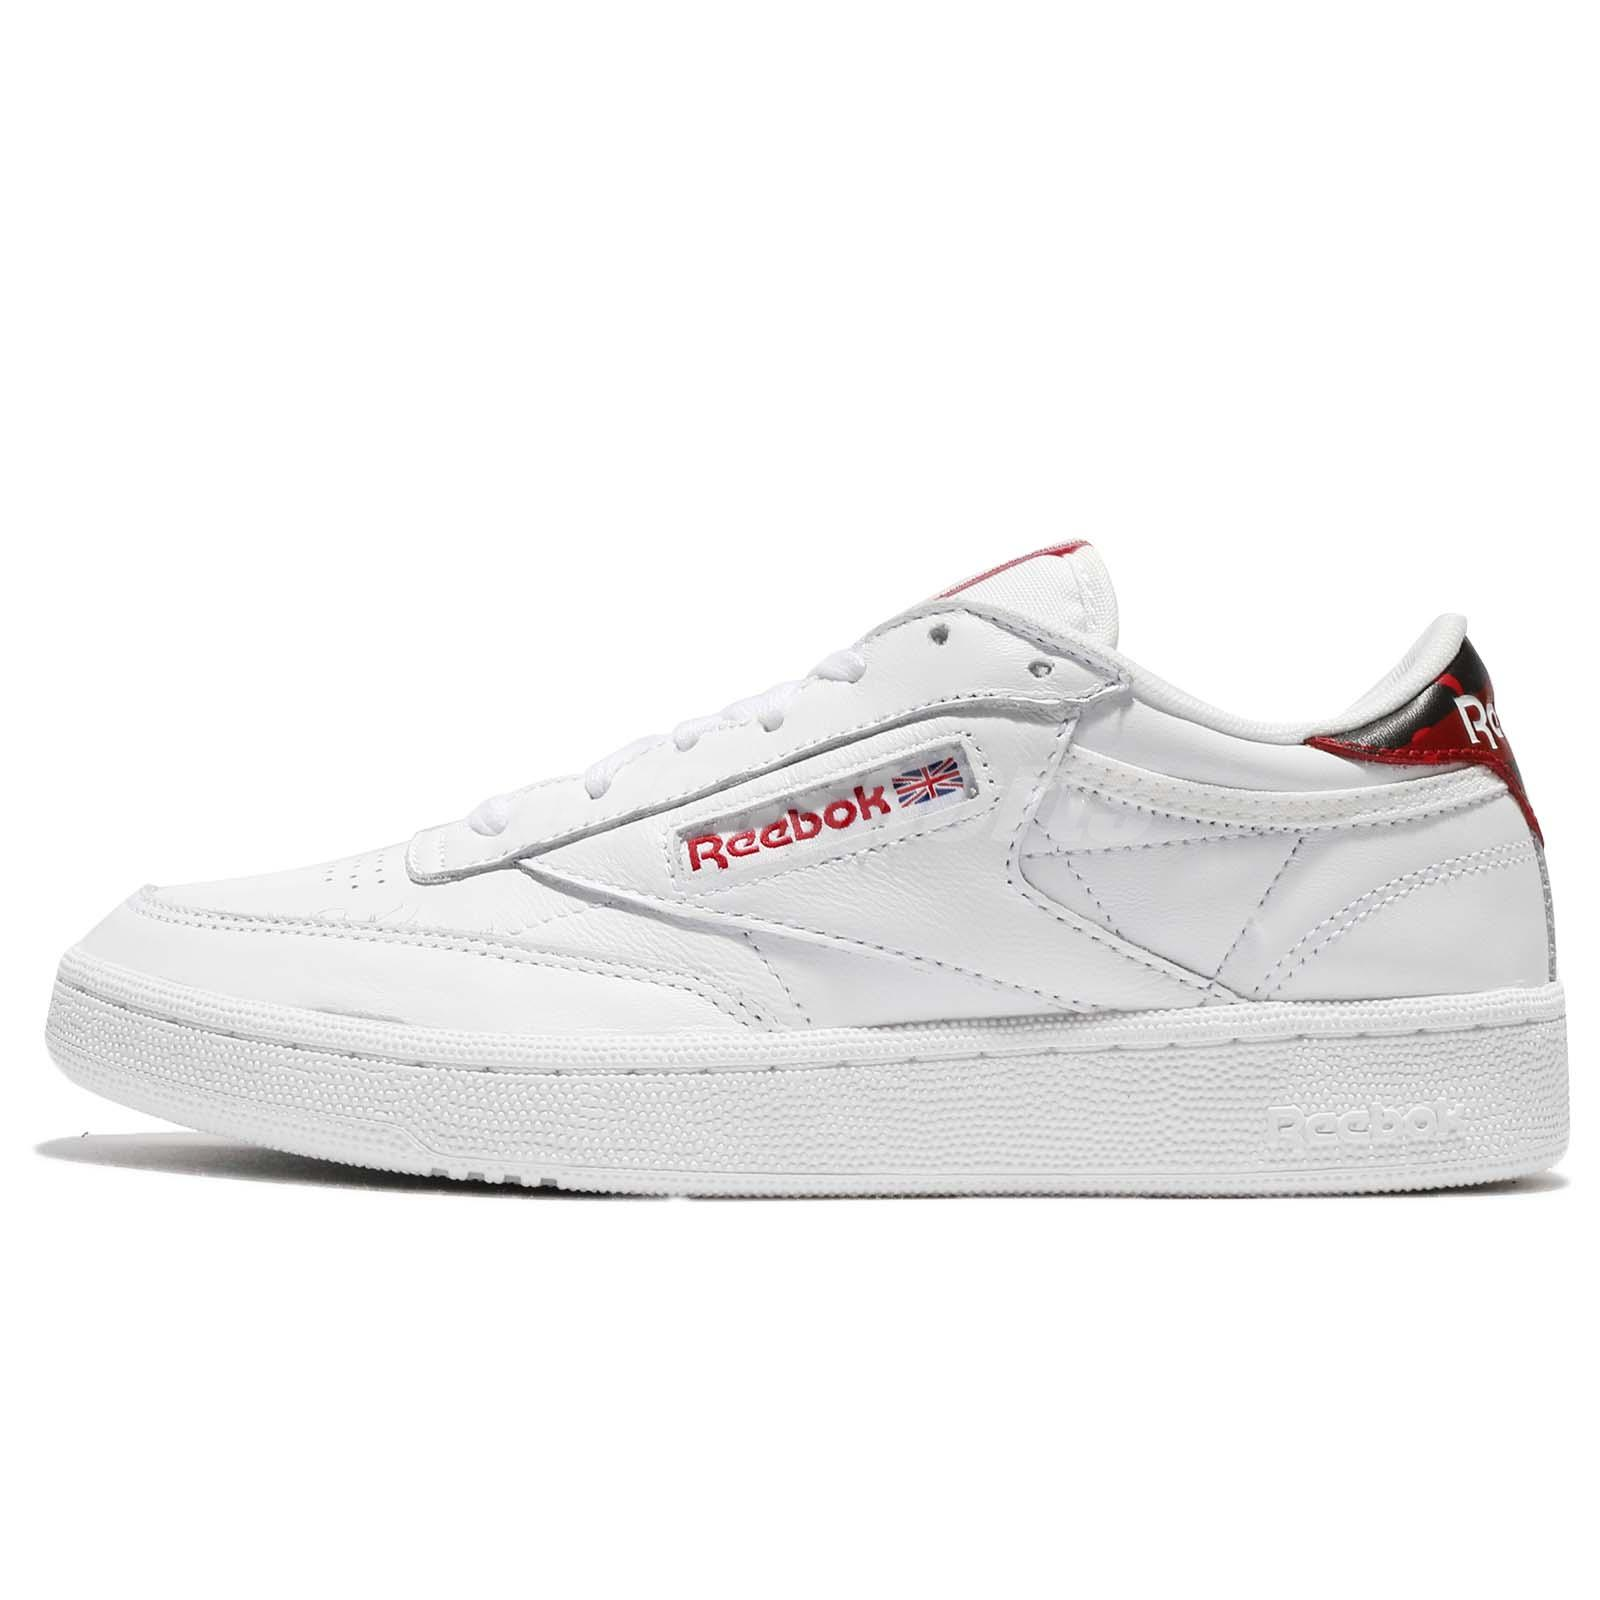 Reebok Club C 85 CNY Chinese New Year White Red Men Shoes Sneaker Trainer  CN4377